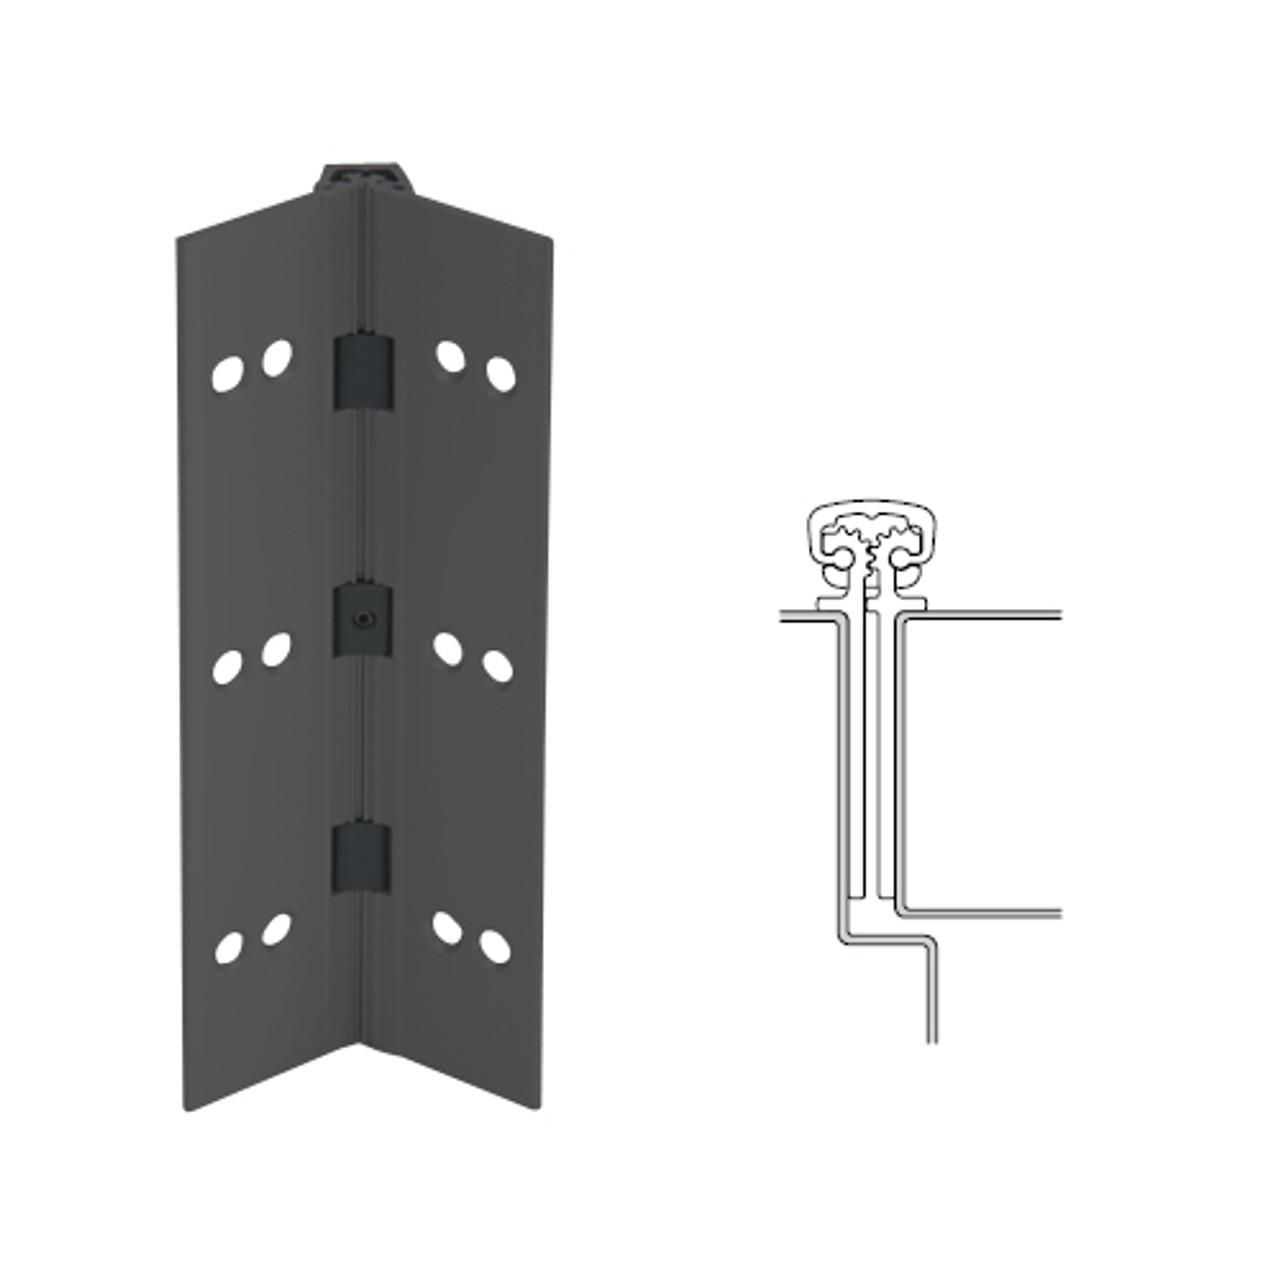 027XY-315AN-95-WD IVES Full Mortise Continuous Geared Hinges with Wood Screws in Anodized Black